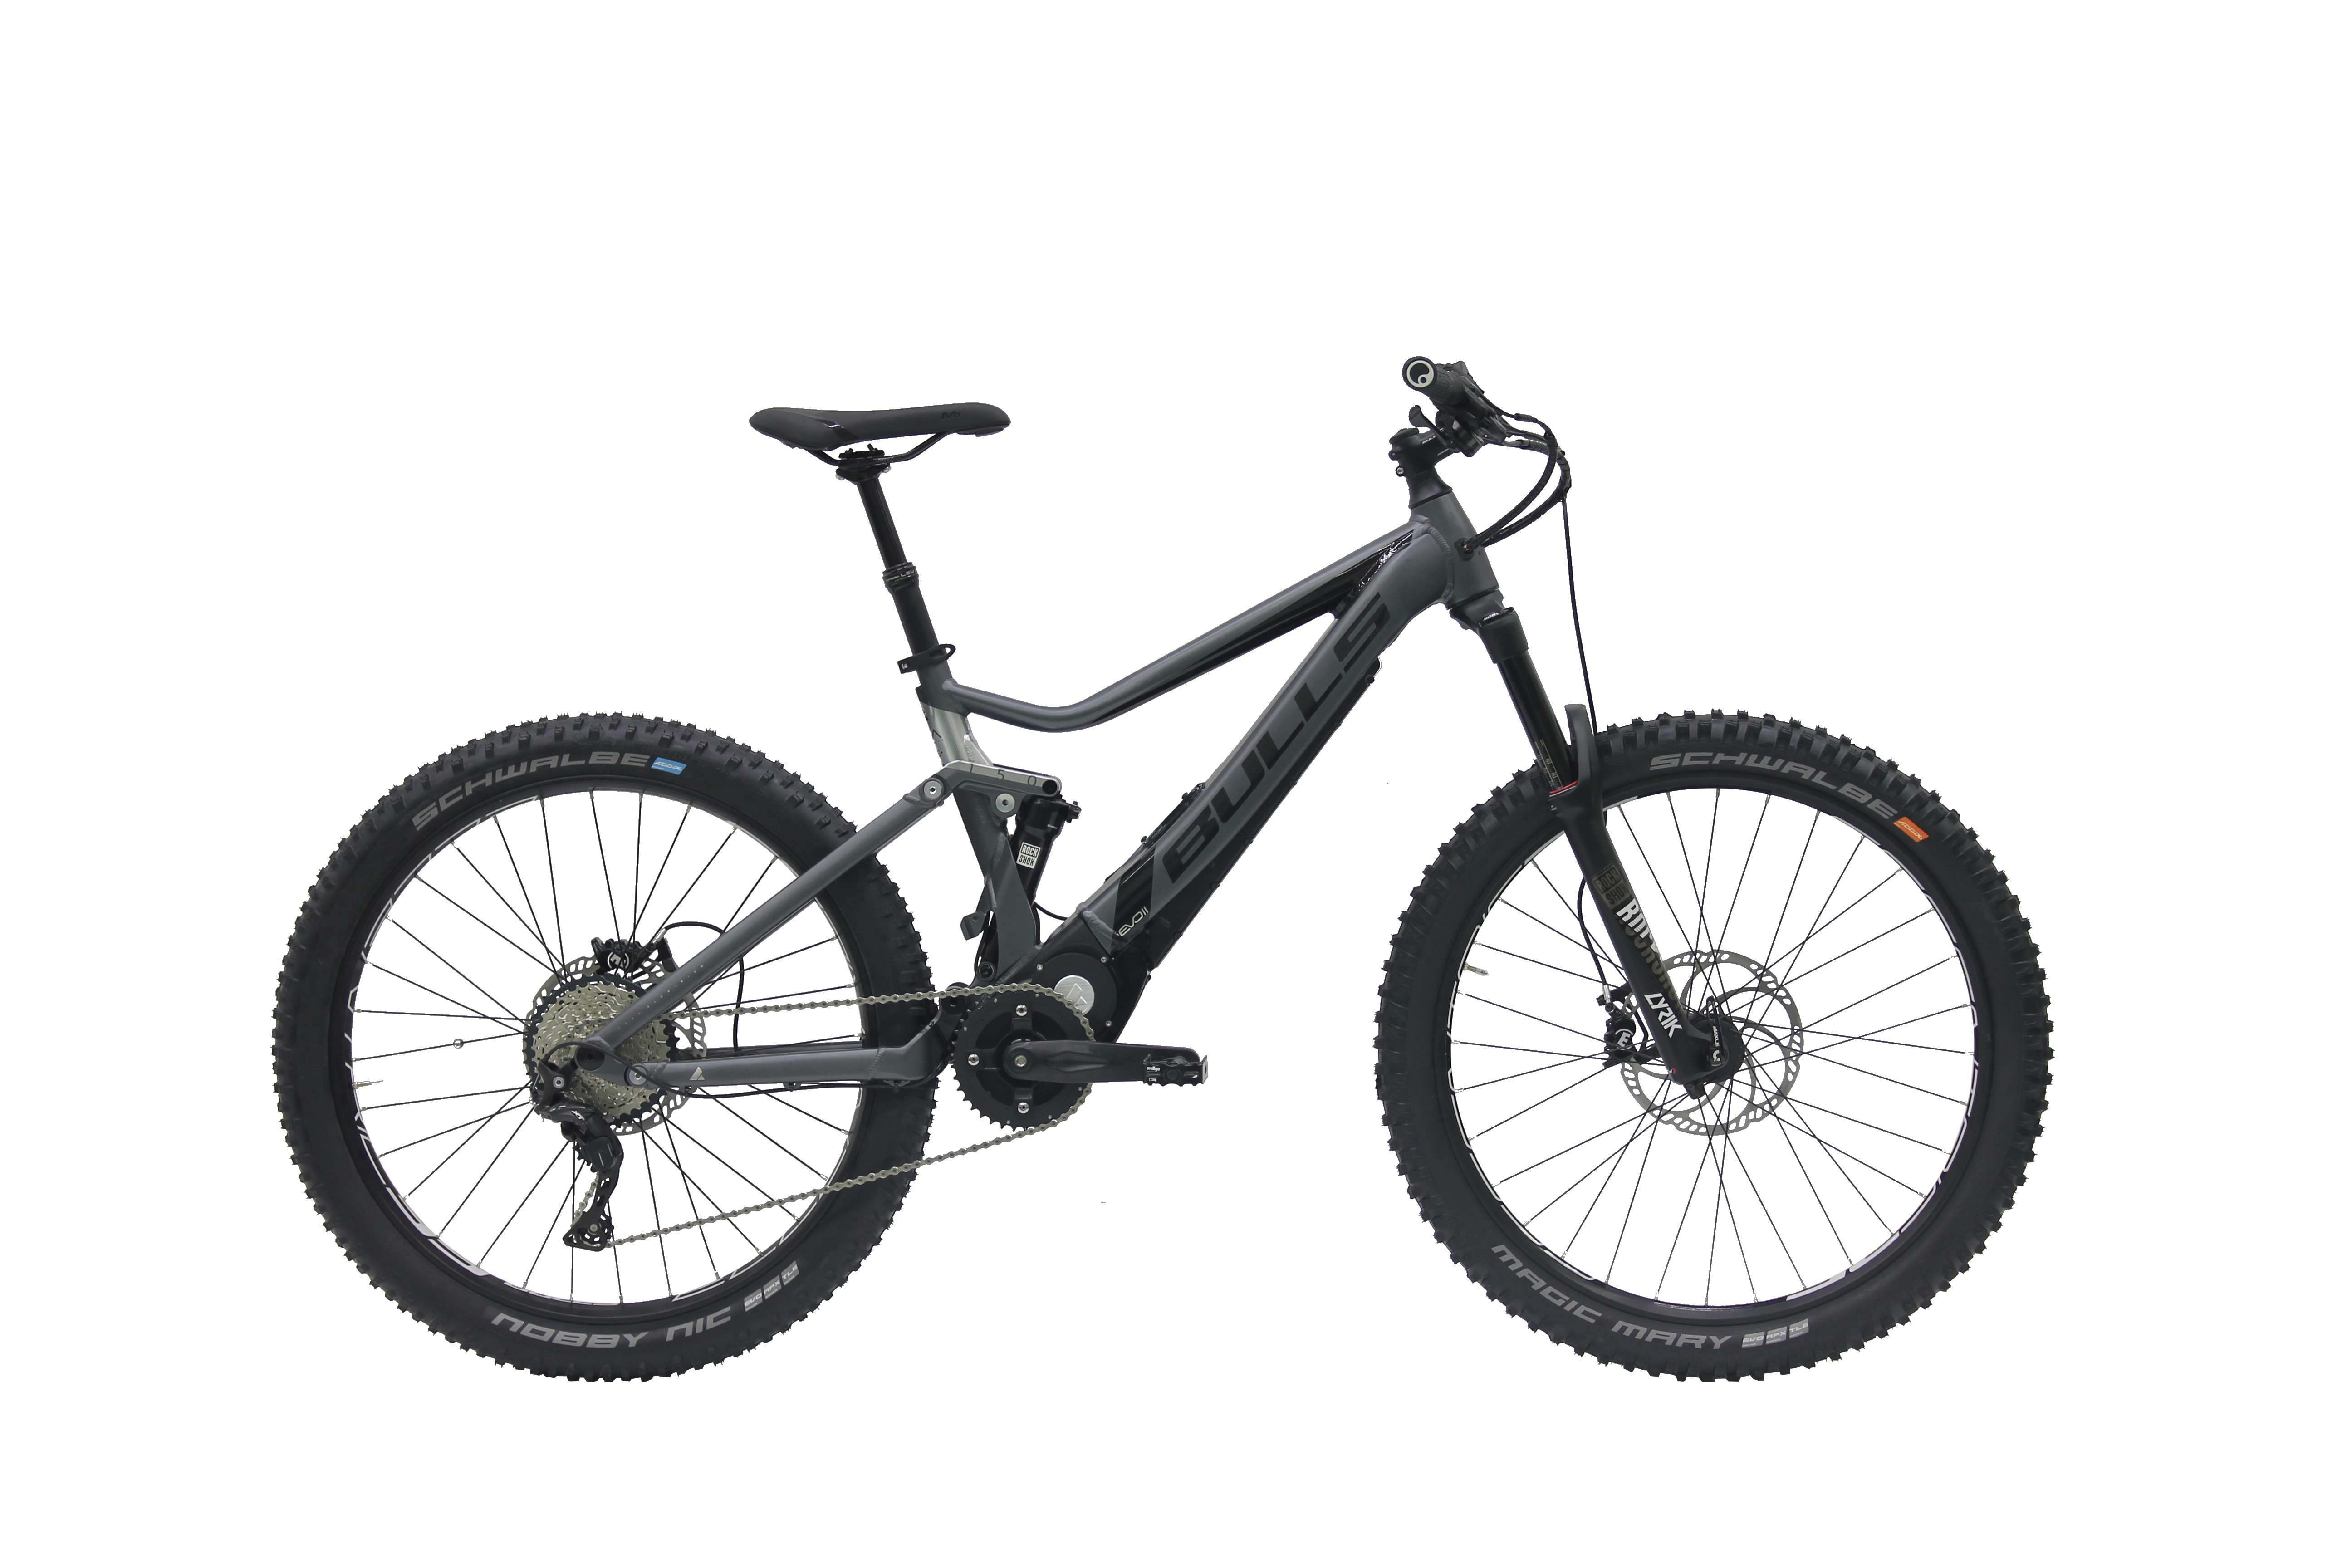 Electric bike dealers in the US online, e-bikes online, Bulls ebike, Bulls bikes, Bulls electric bikes, Bulls bicycles, Bulls